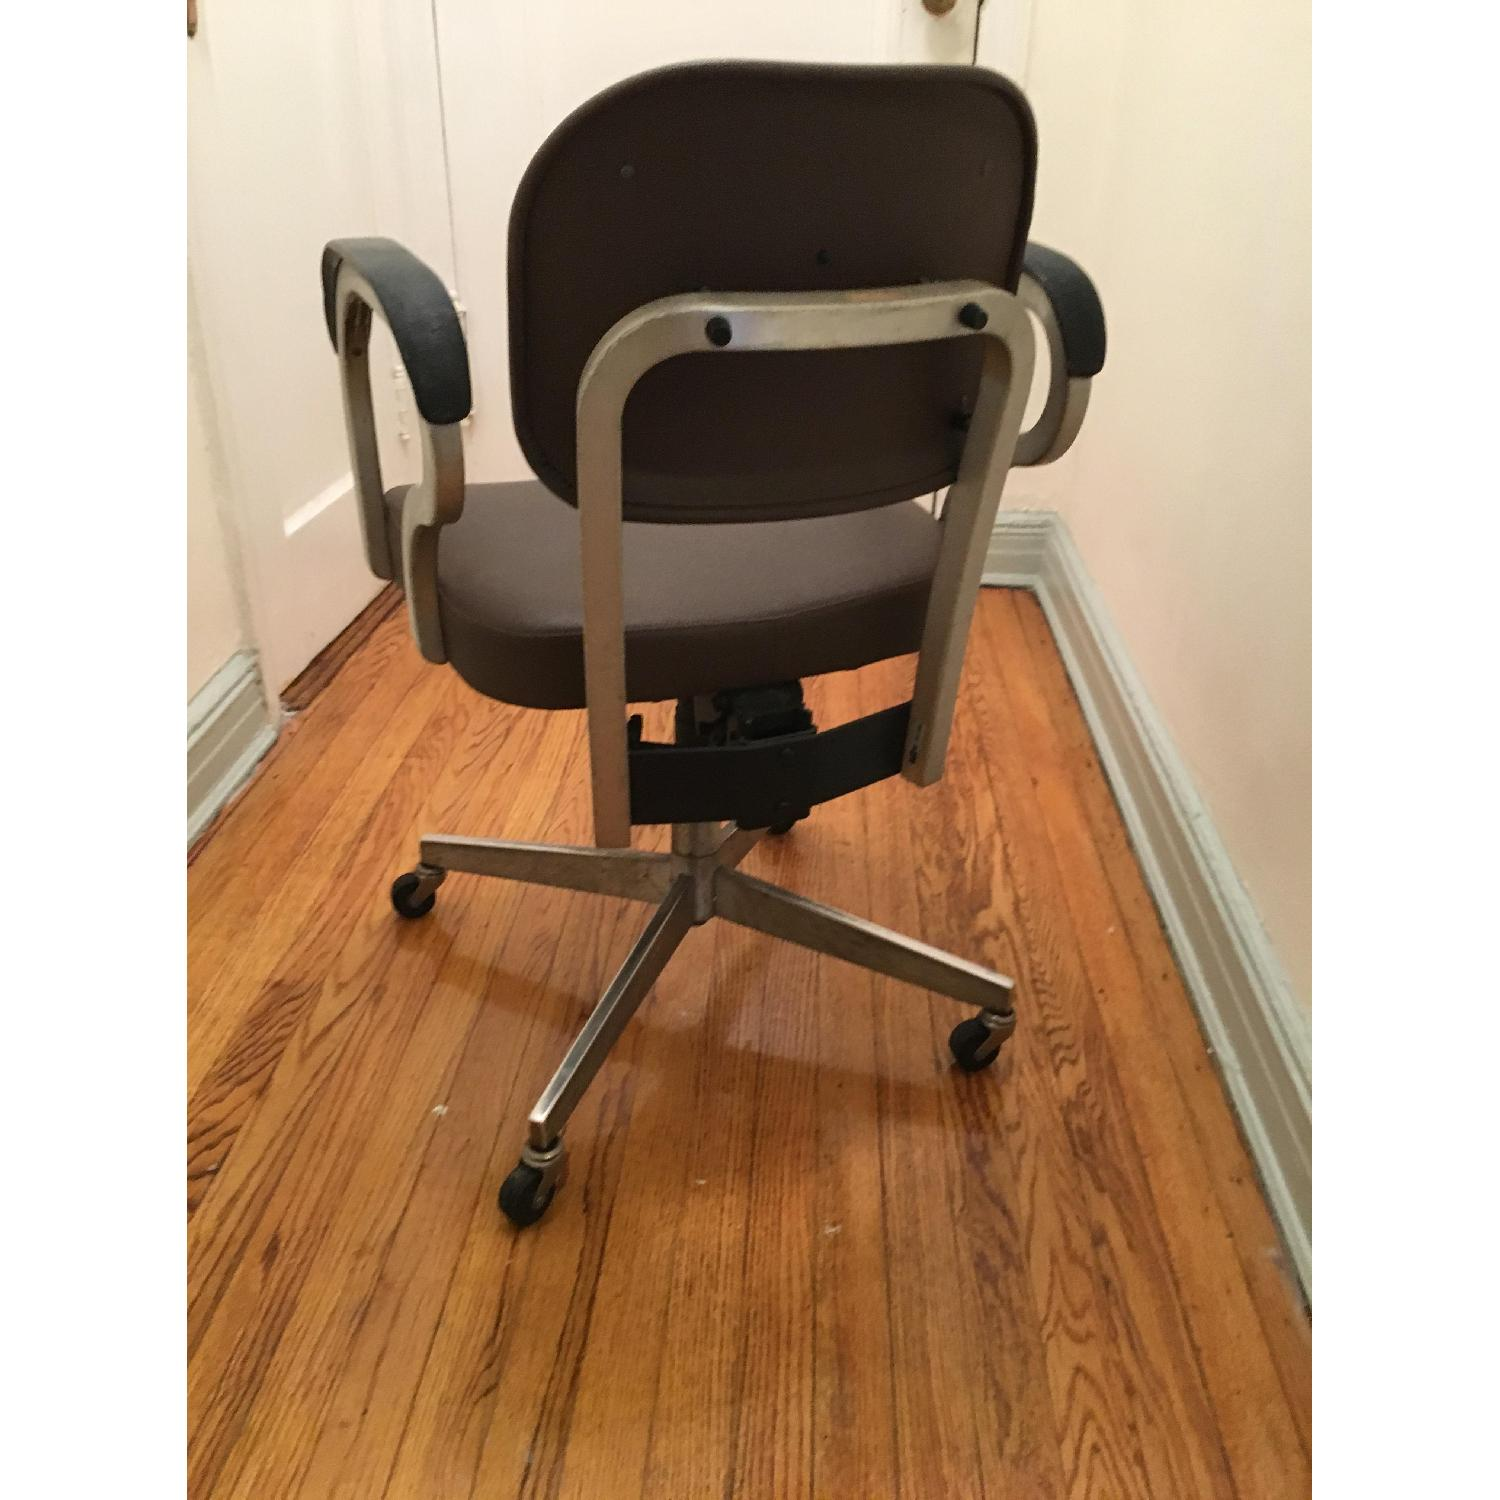 Goodform Vintage Rolling Office Chair w/ Adjustable Height-2